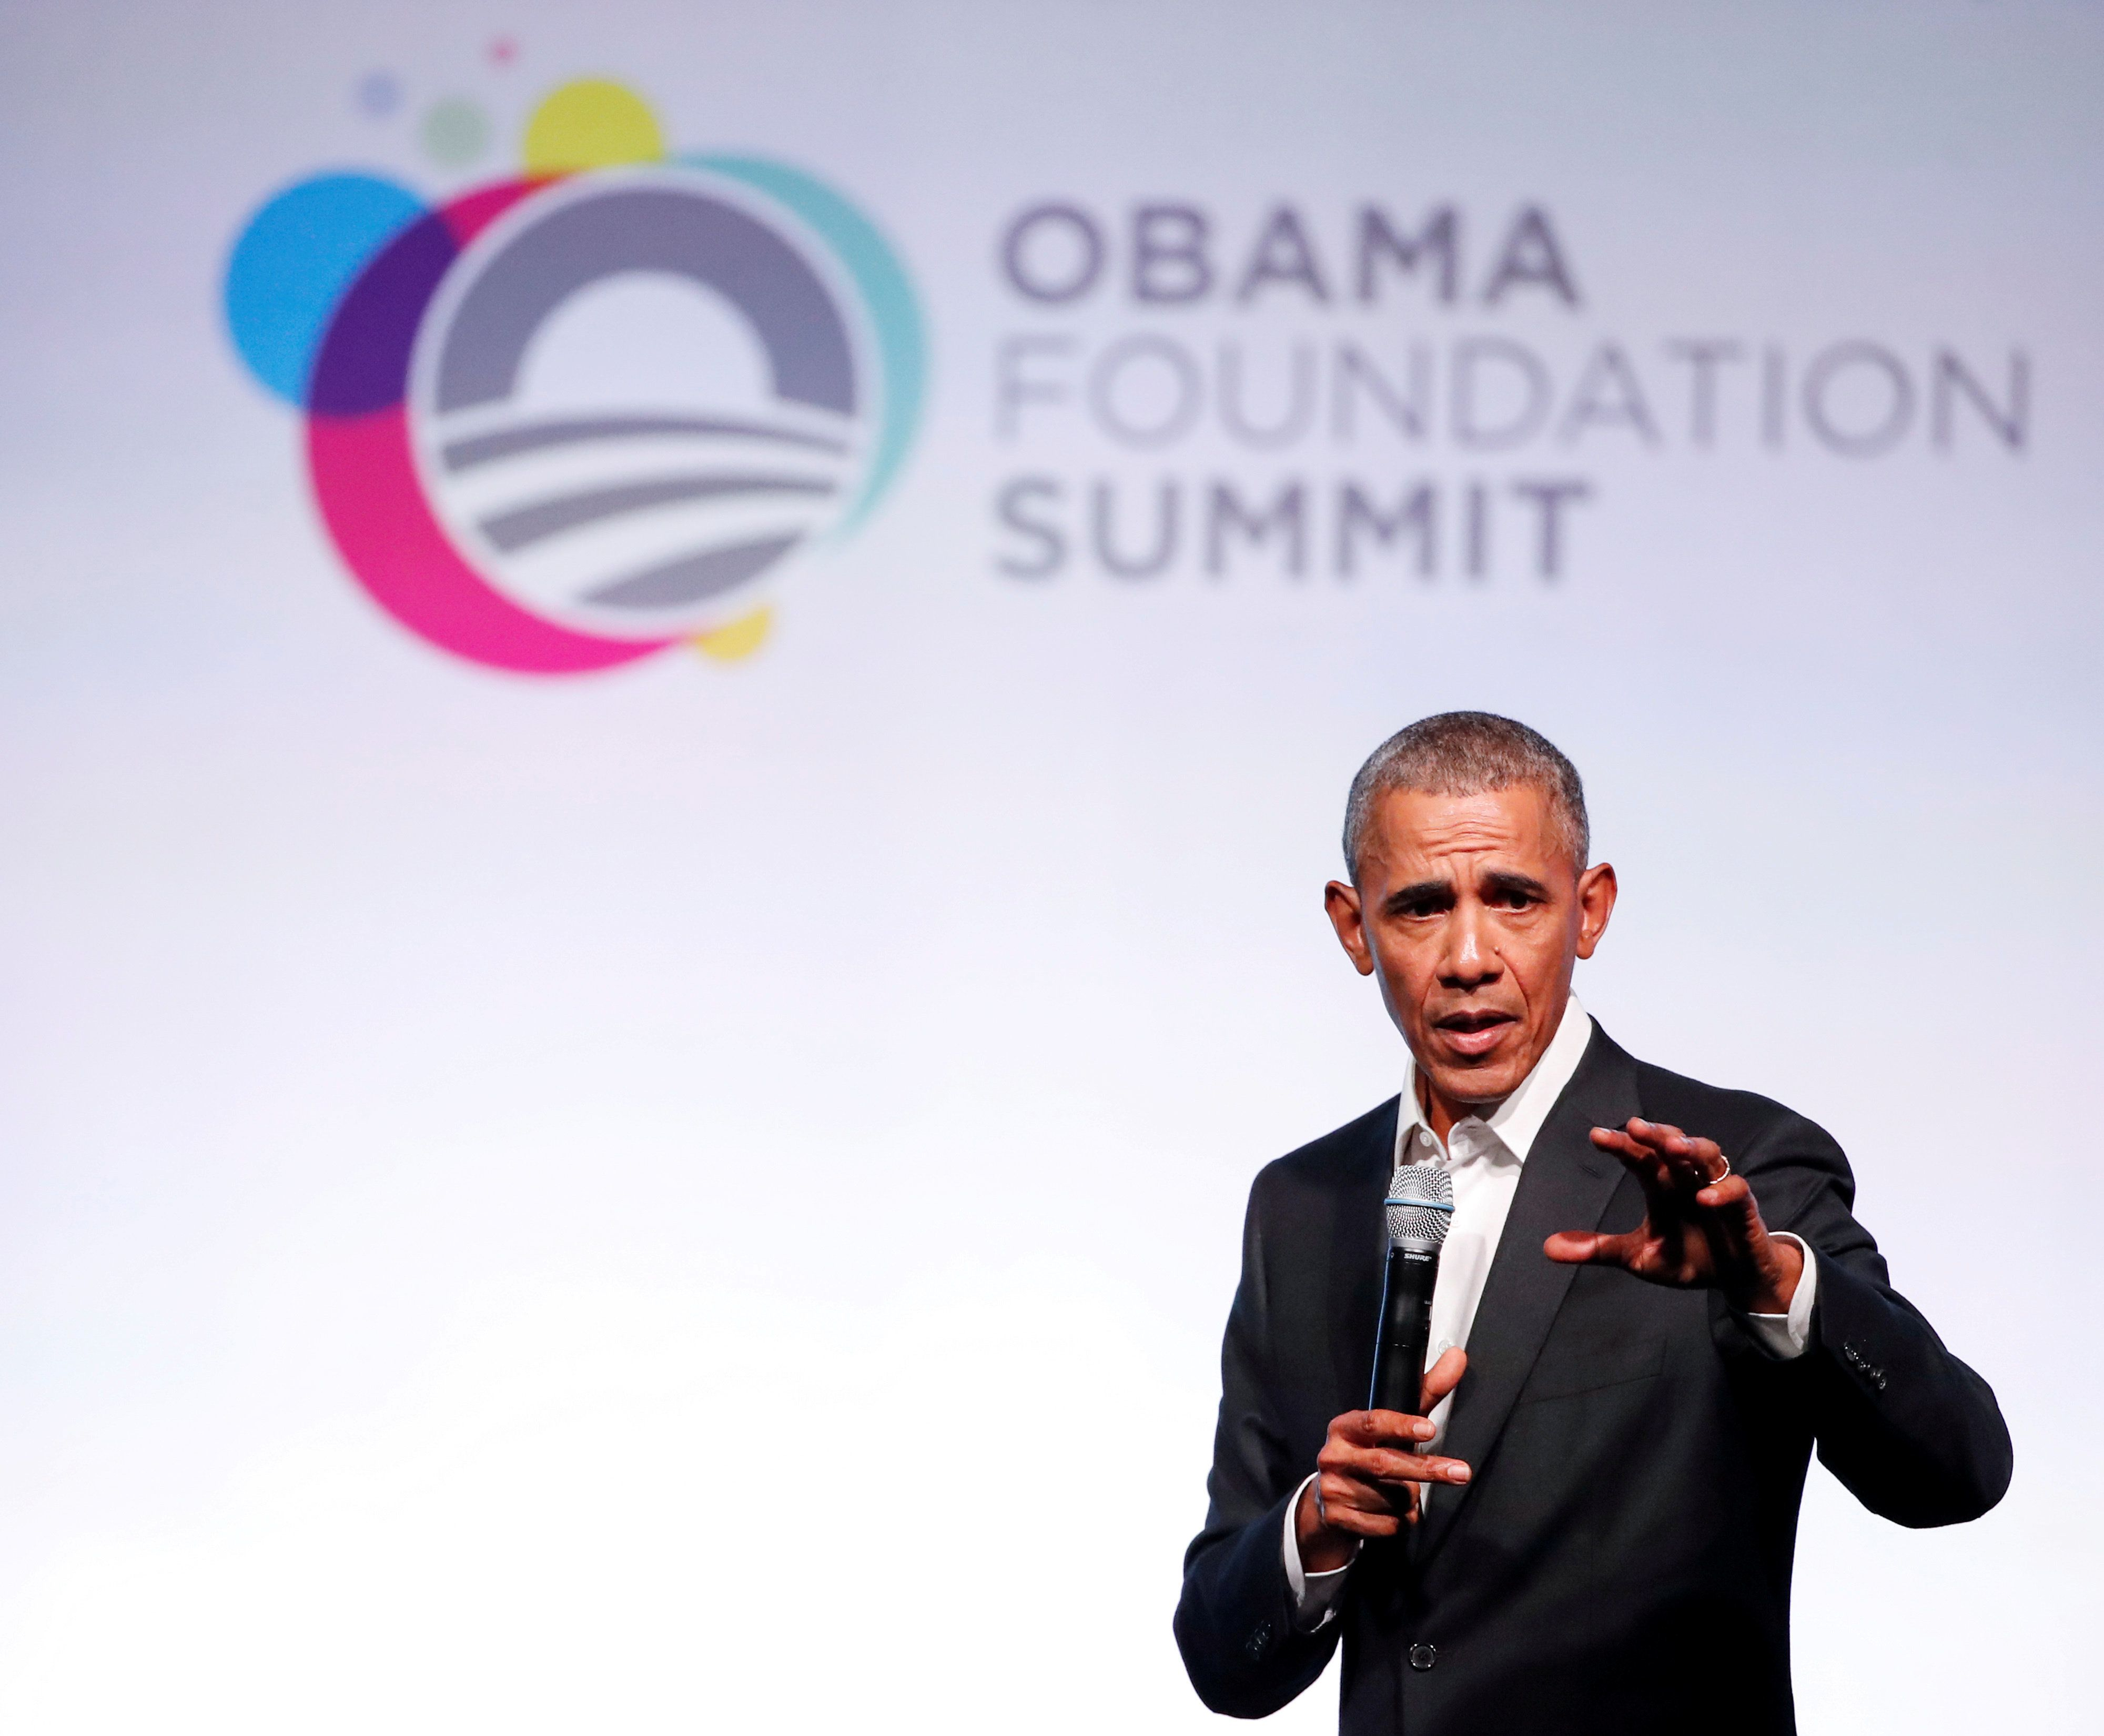 Former U.S. President Barack Obama speaks during the first day of the Obama Foundation Summit in Chicago, Illinois, U.S. October 31, 2017. REUTERS/Kamil Krzaczynski     TPX IMAGES OF THE DAY